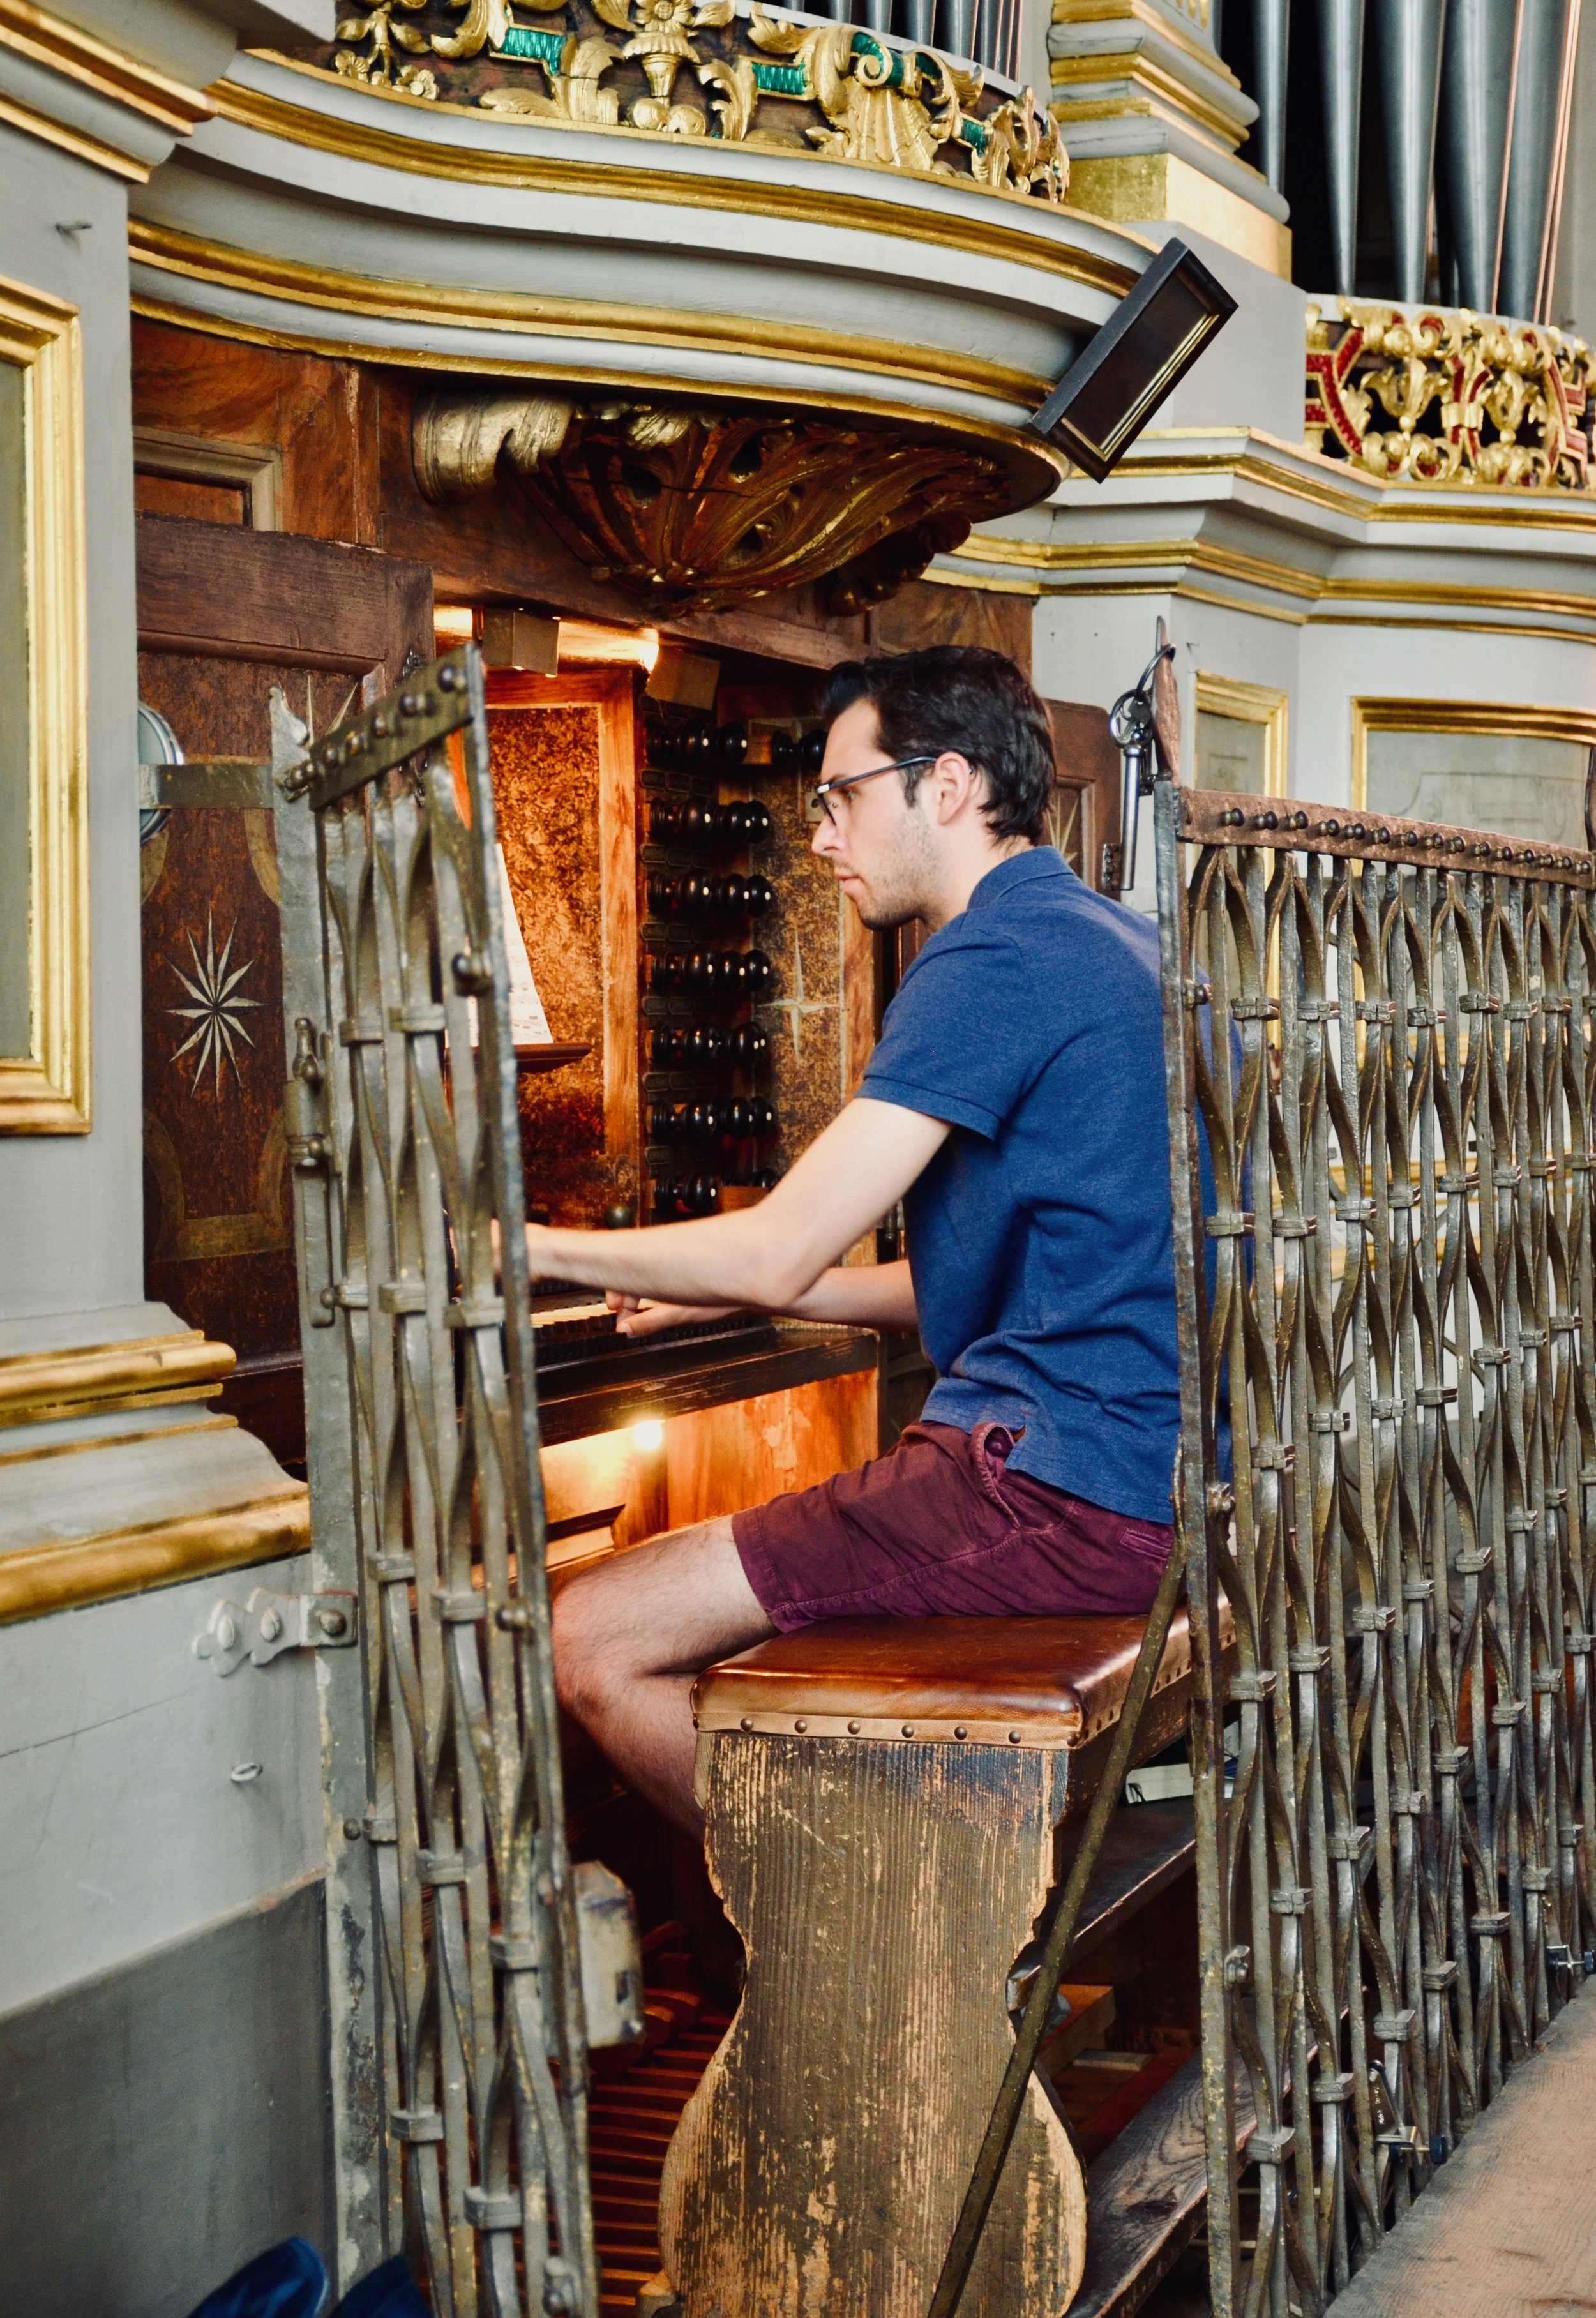 Nick Capozzoli plays the 1714 Gottfried Silbermann organ in Freiberg Dom.